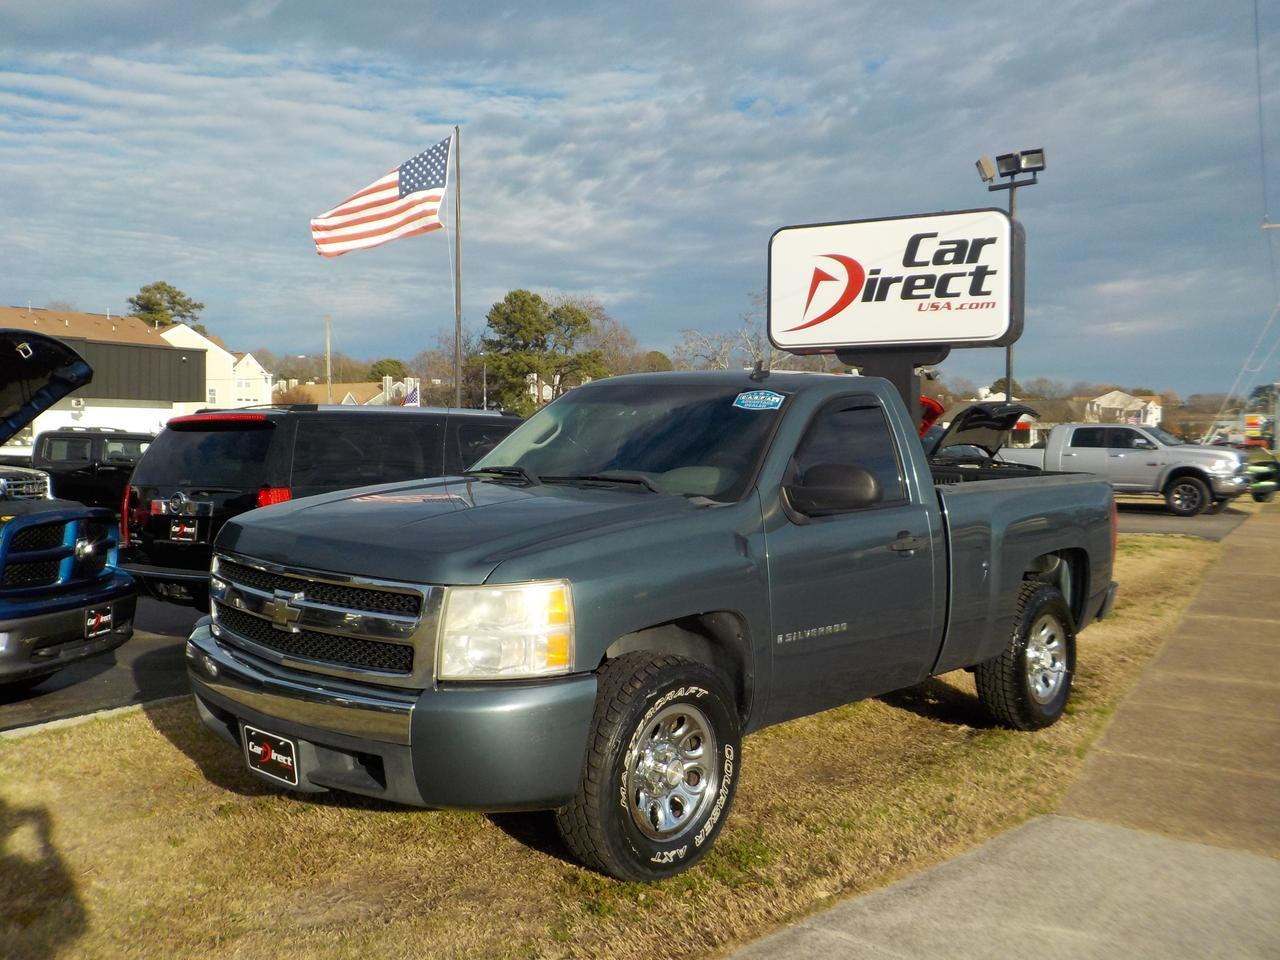 2008 CHEVROLET SILVERADO LS REGULAR CAB WORK TRUCK RWD, WARRANTY, TOW PACKAGE, AUTOMATIC HEADLIGHTS, BED LINER!